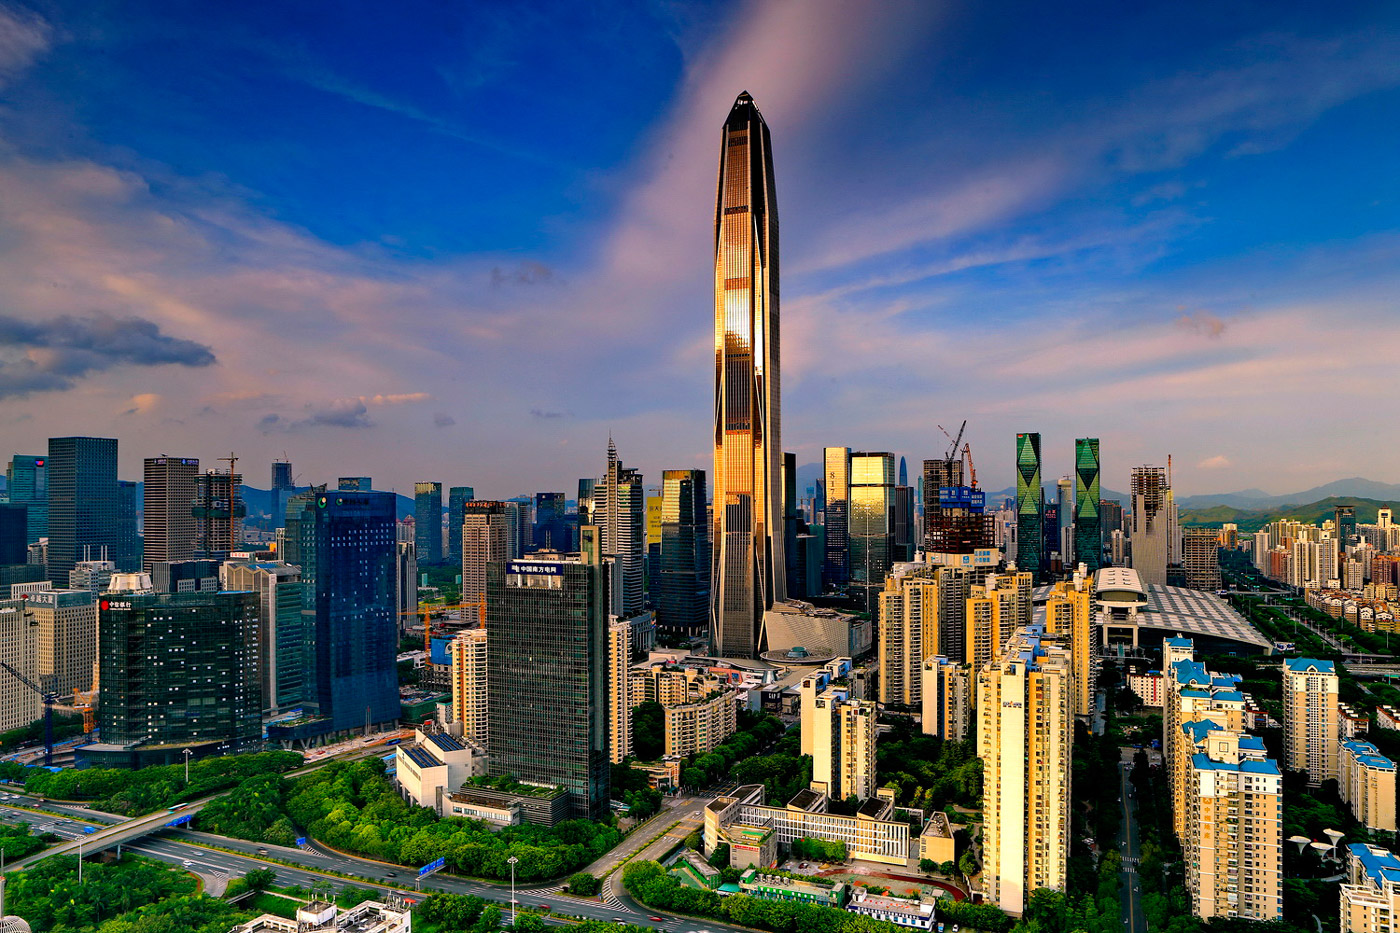 Ping An Finance Center - Tallest Building in the World - Beautiful Global